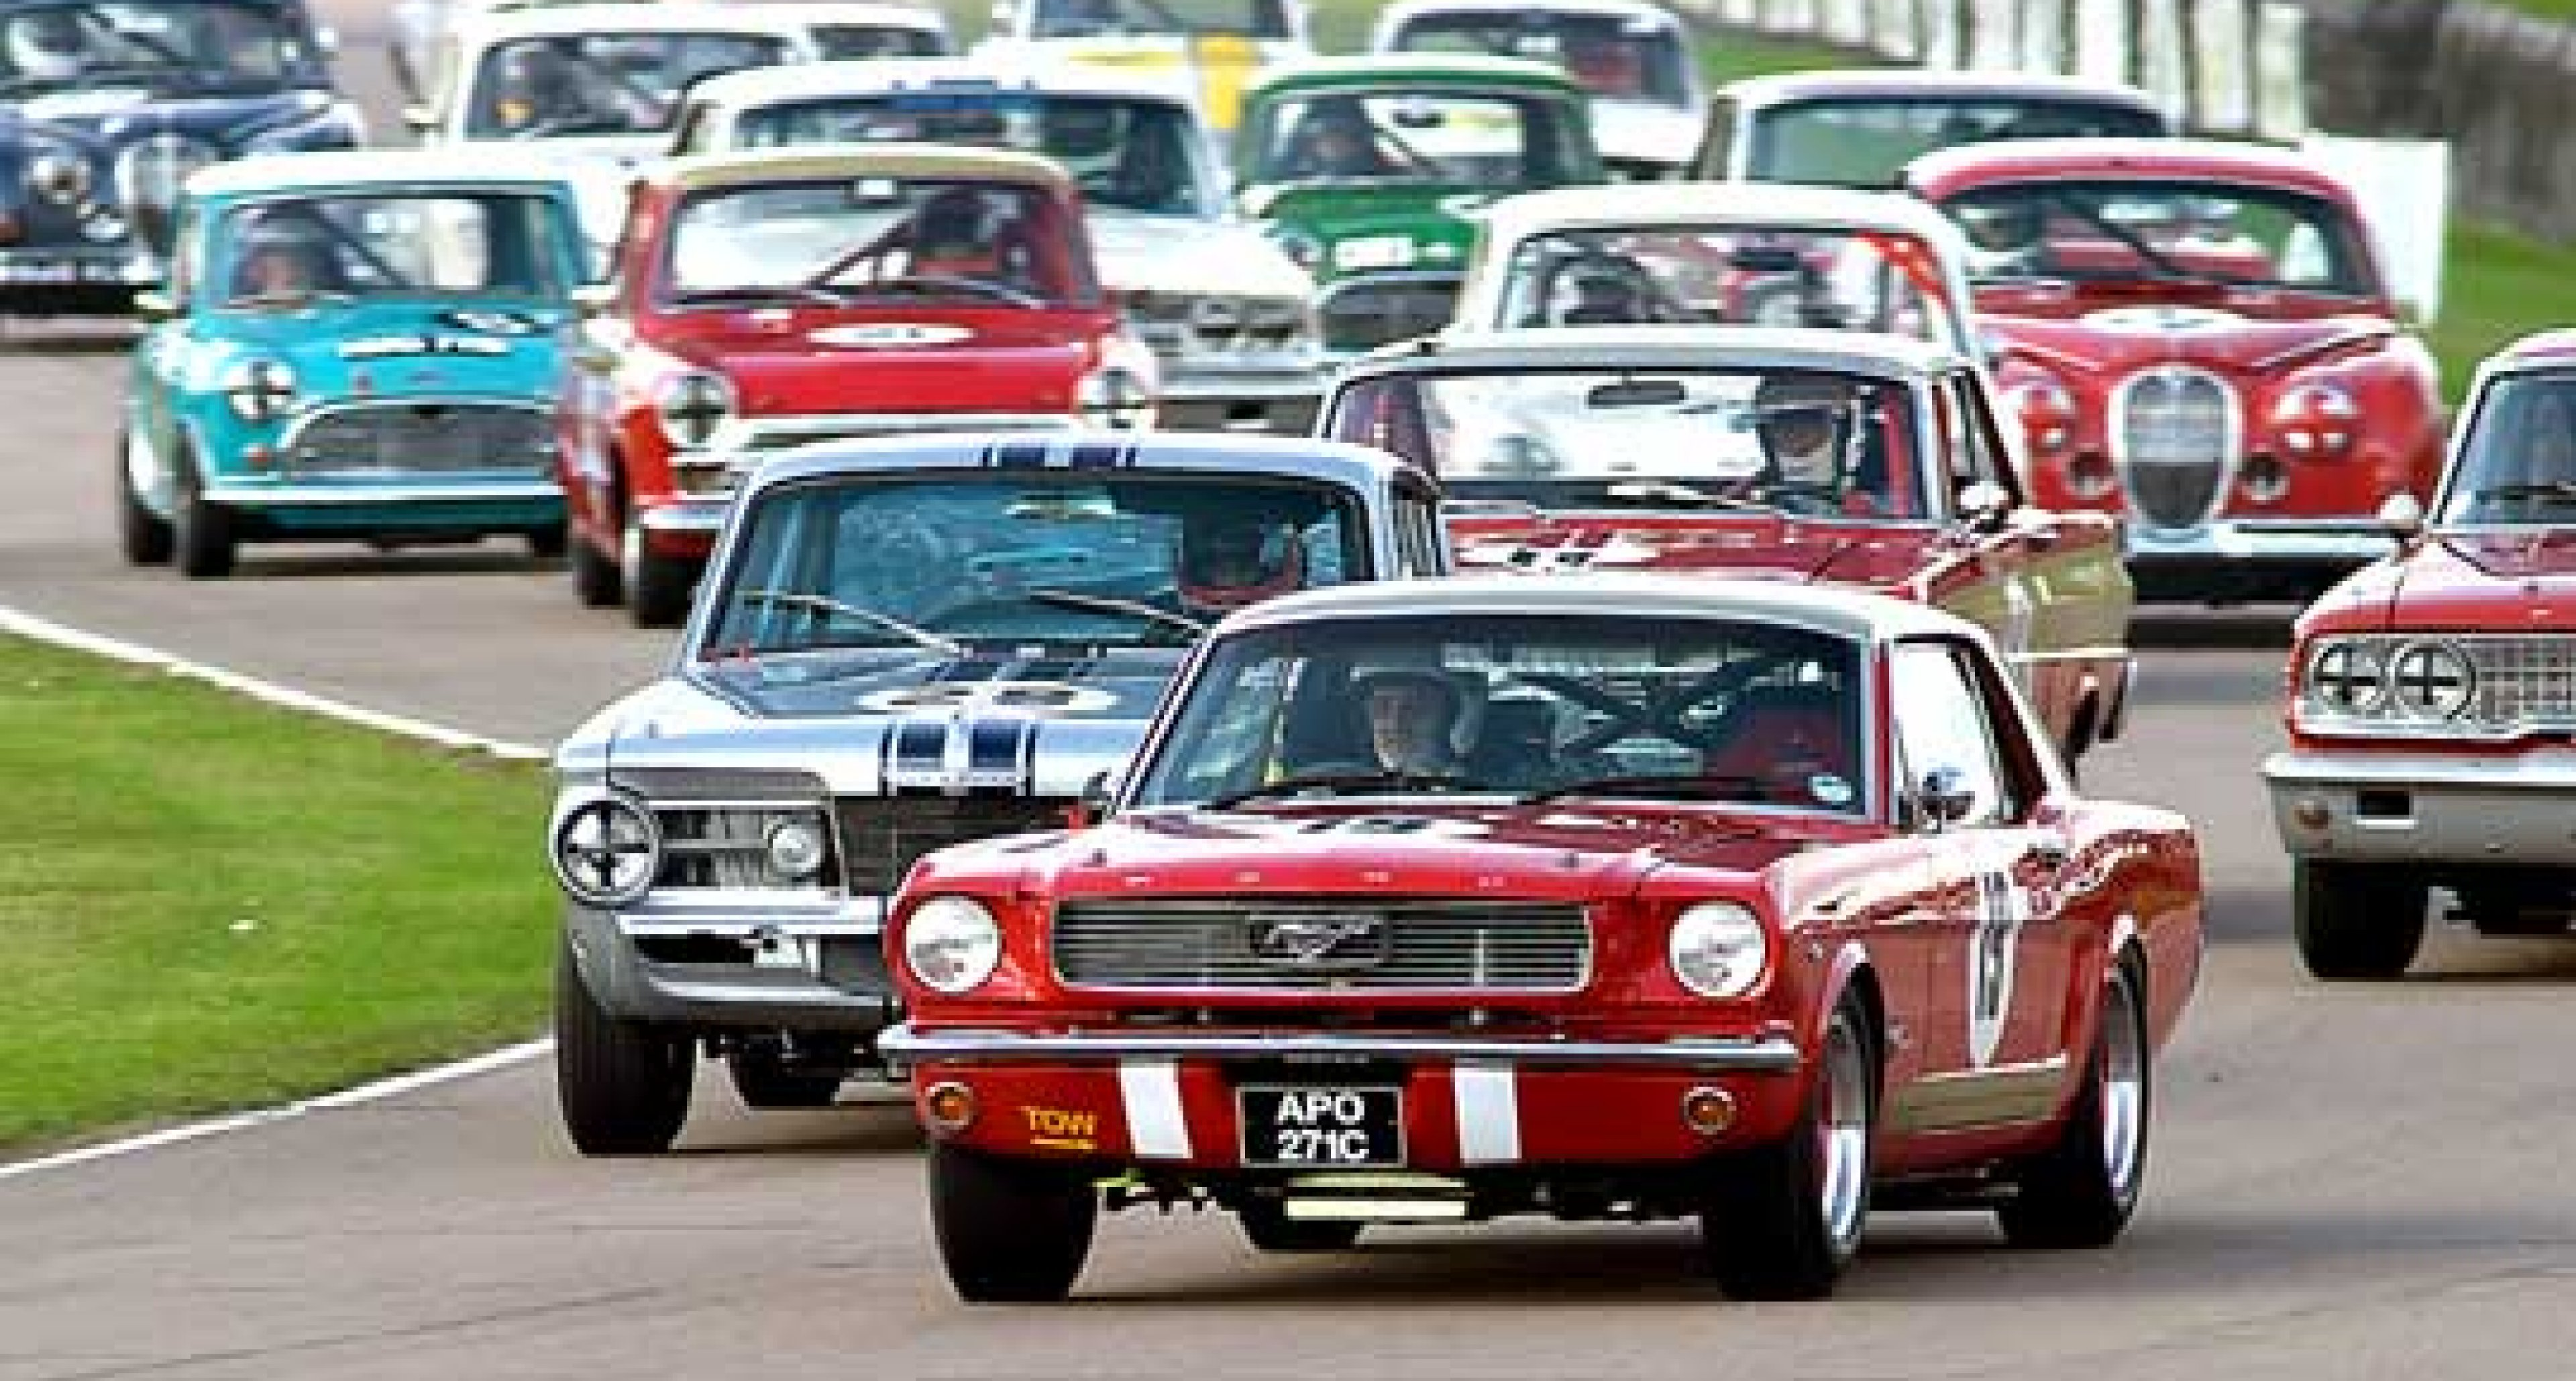 Goodwood Revival 2005 - Review